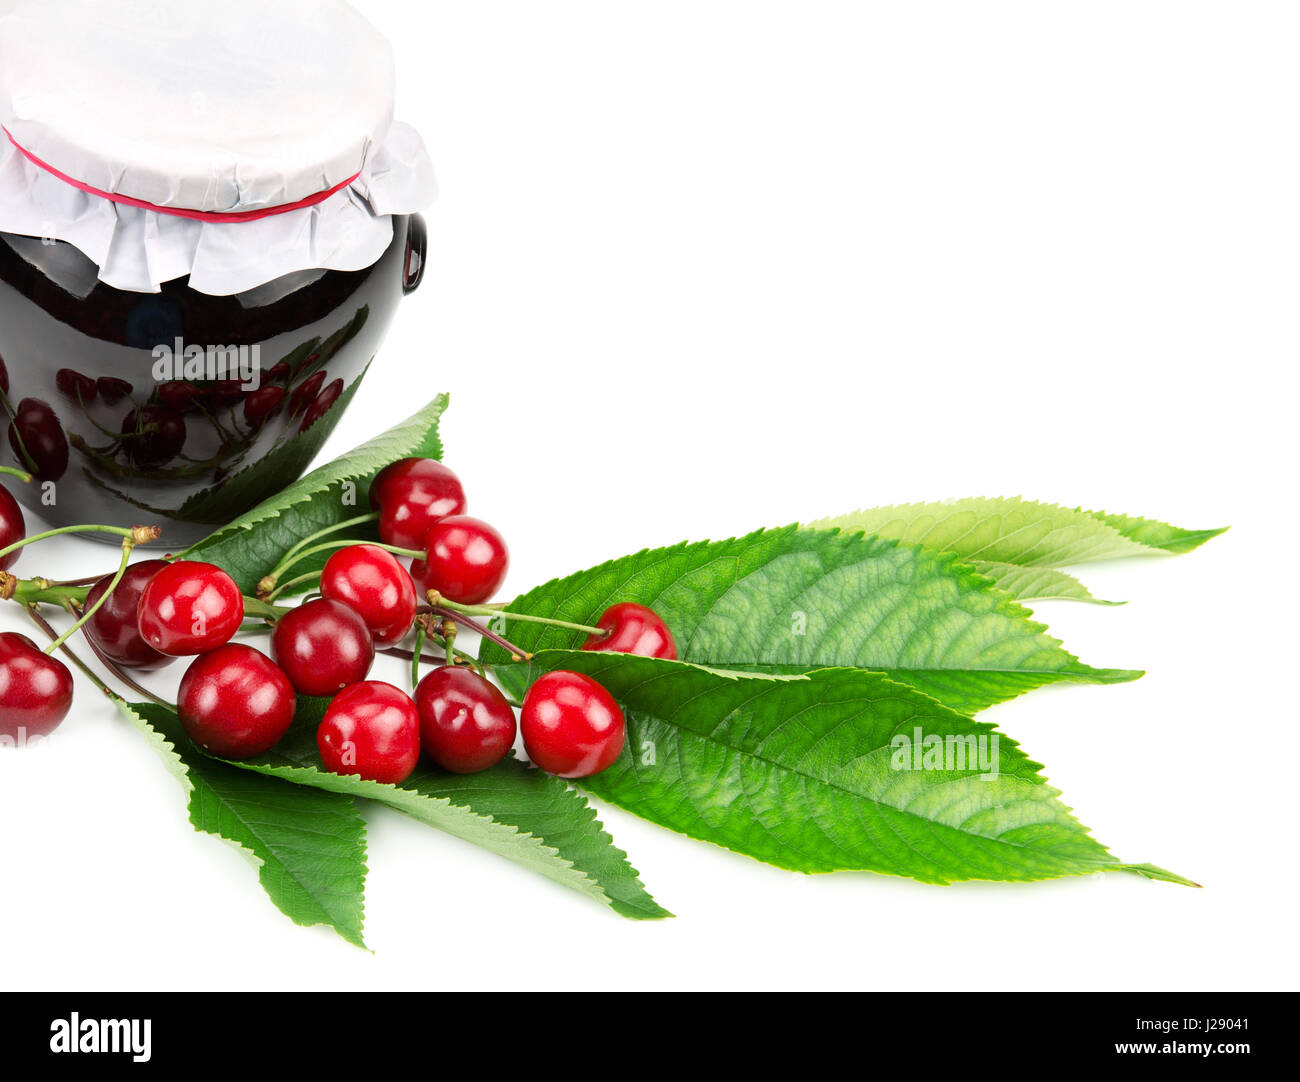 Cherry jam and cherries isolated on white background - Stock Image